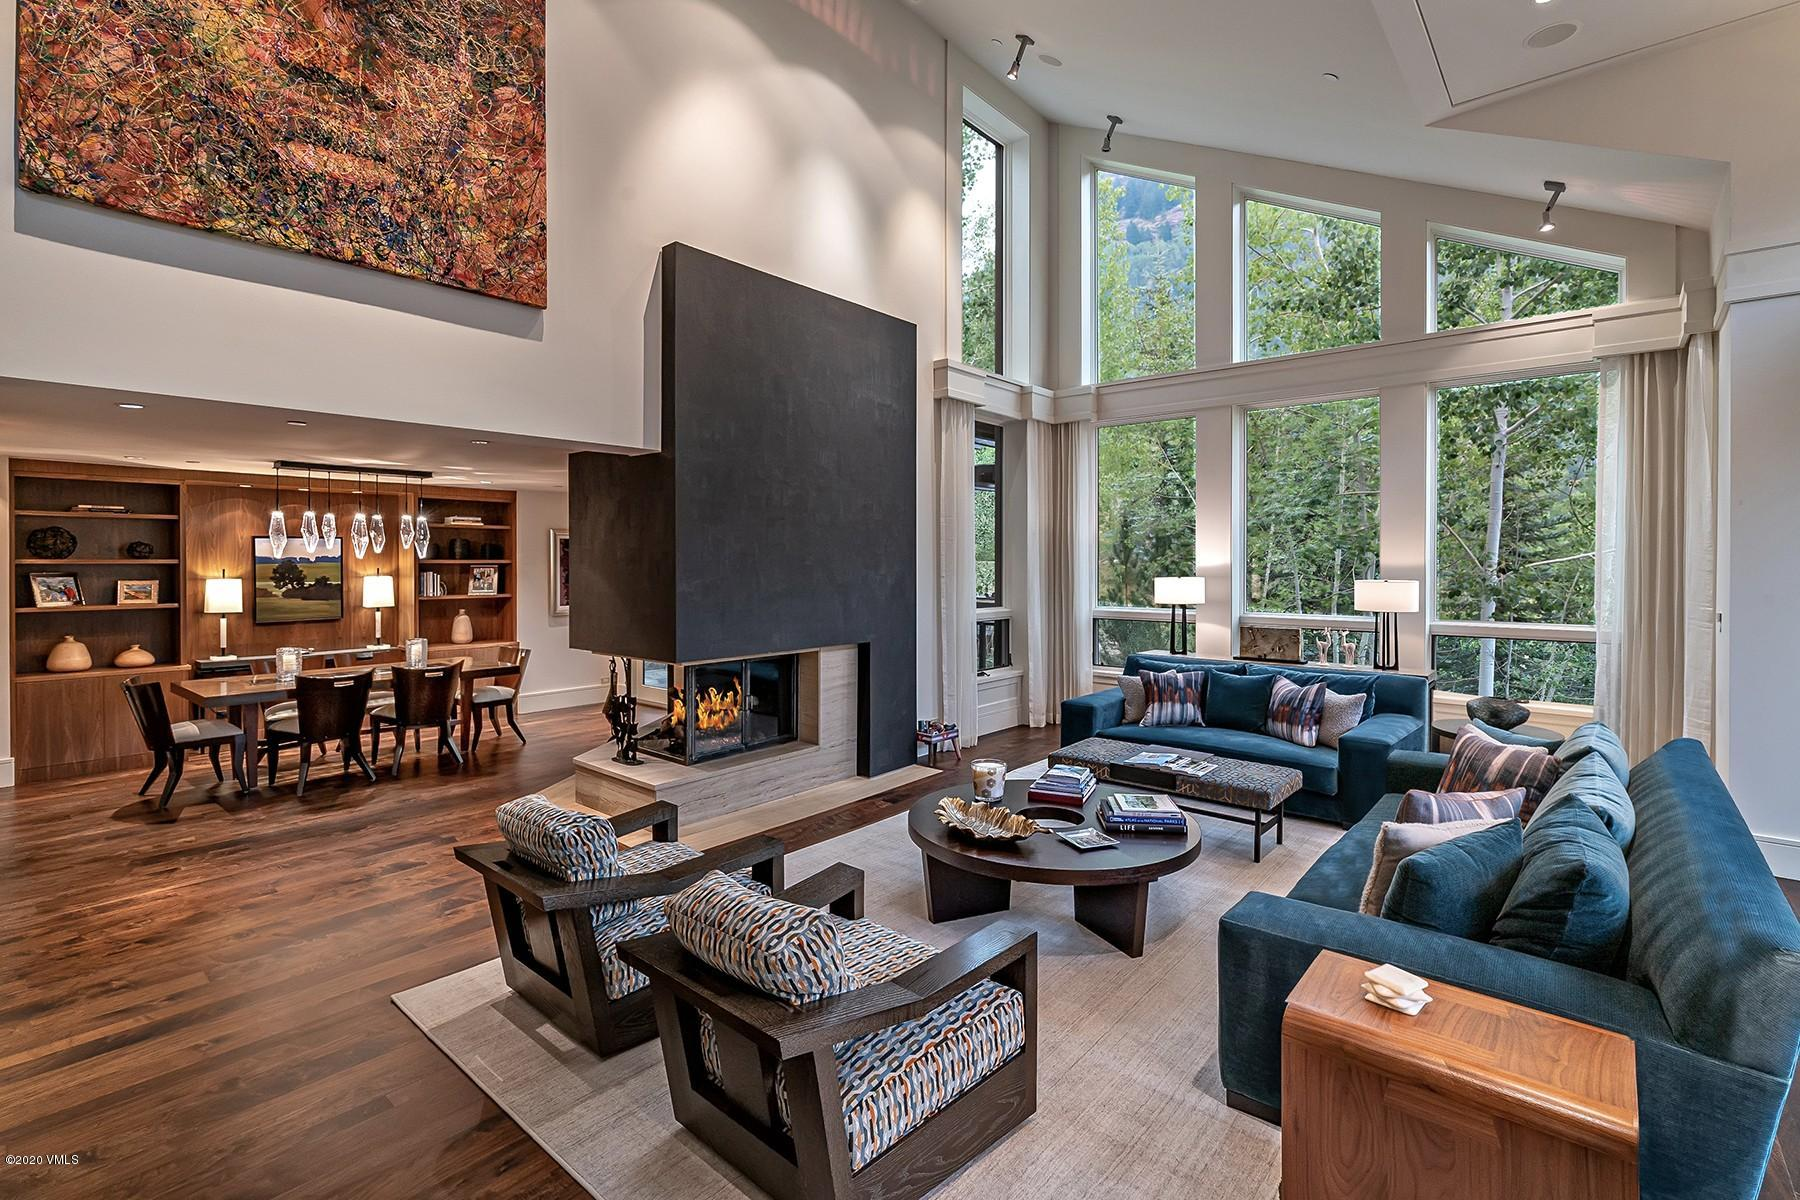 Tucked away amongst the quintessential alpine environment this south-facing mountain contemporary dream home provides an abundance of sunshine throughout the day. Dramatic floor to ceiling windows seamlessly breathe nature into this eloquent floor plan which has been fully designed to entertain a lot of family & friends. Multiple outdoor living spaces. Elevator and hot tub. Owner installed a new roof and all new mechanical system in 2019. Visit 2975mannsranch.com/?mls to learn more.